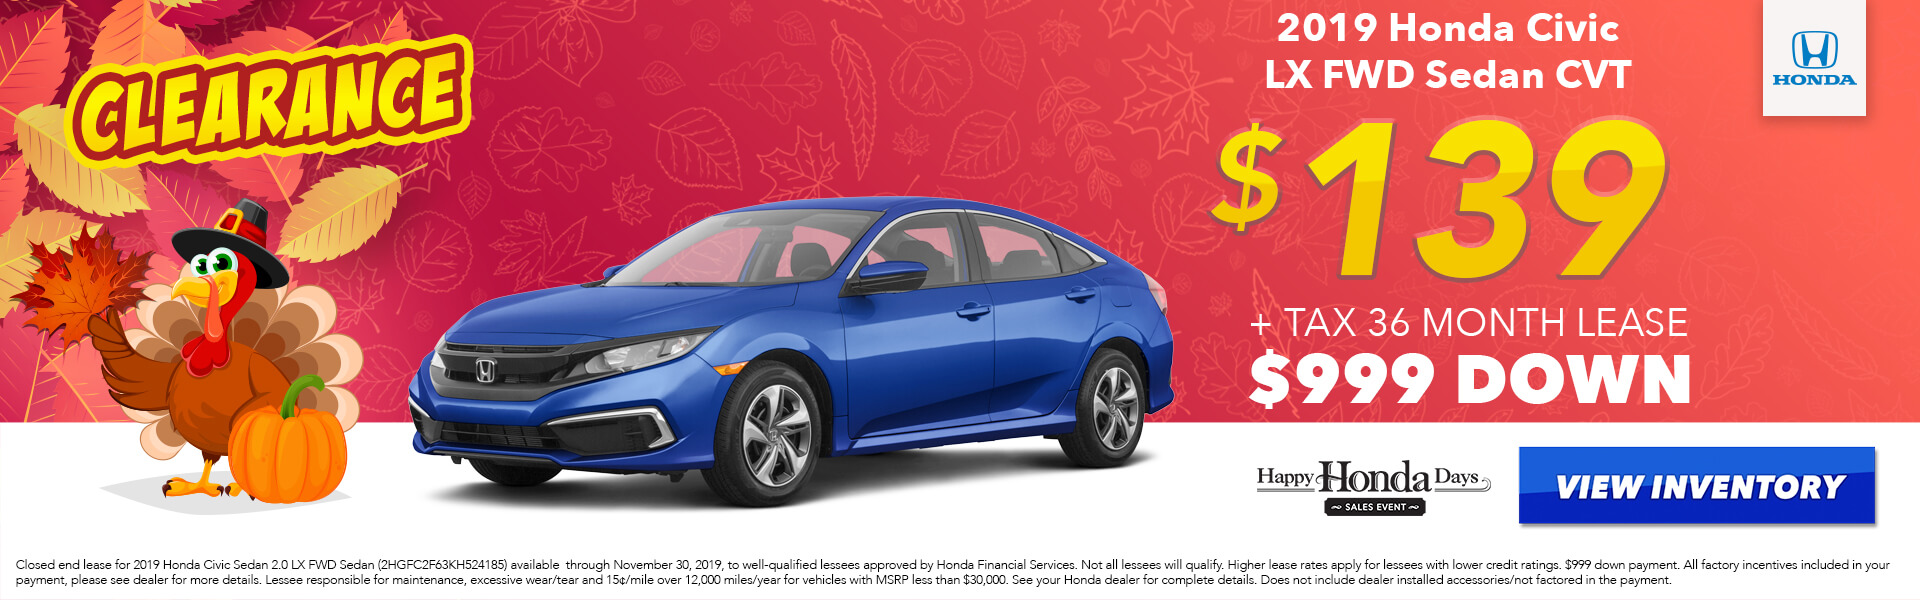 2019 Honda Civic LX Lease for $139